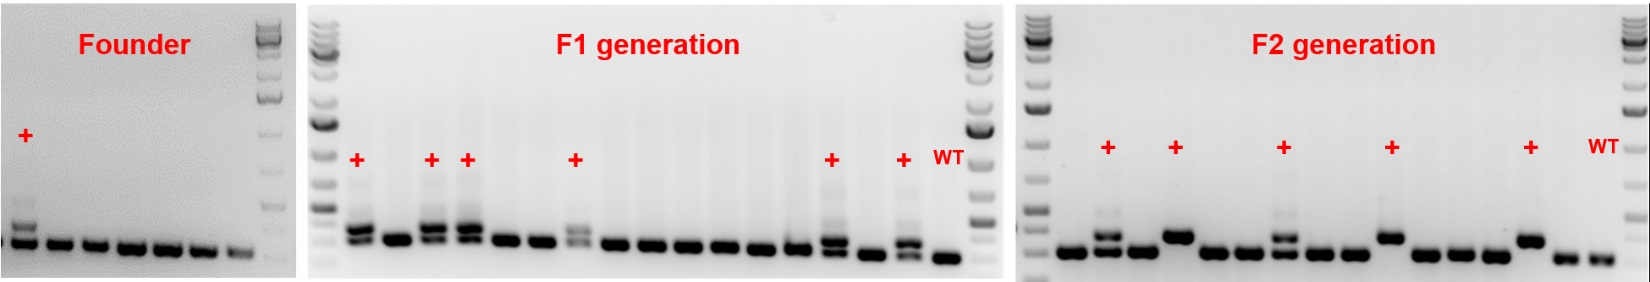 TARGATT-rat-genotyping-1